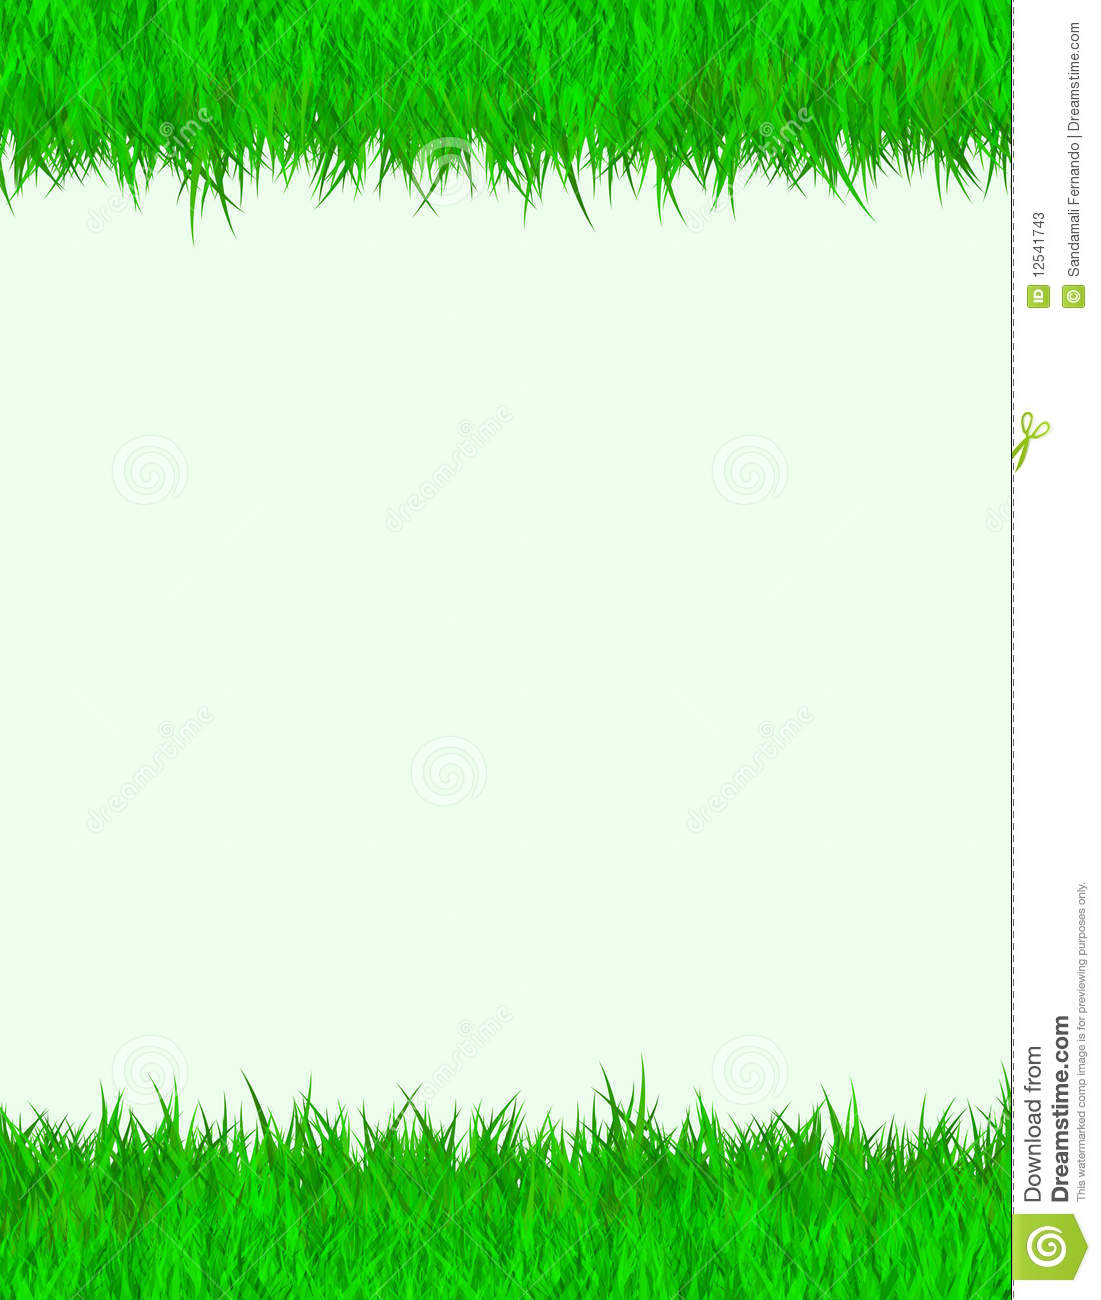 Grass border stock illustration image of grassy blank for Best grasses for borders